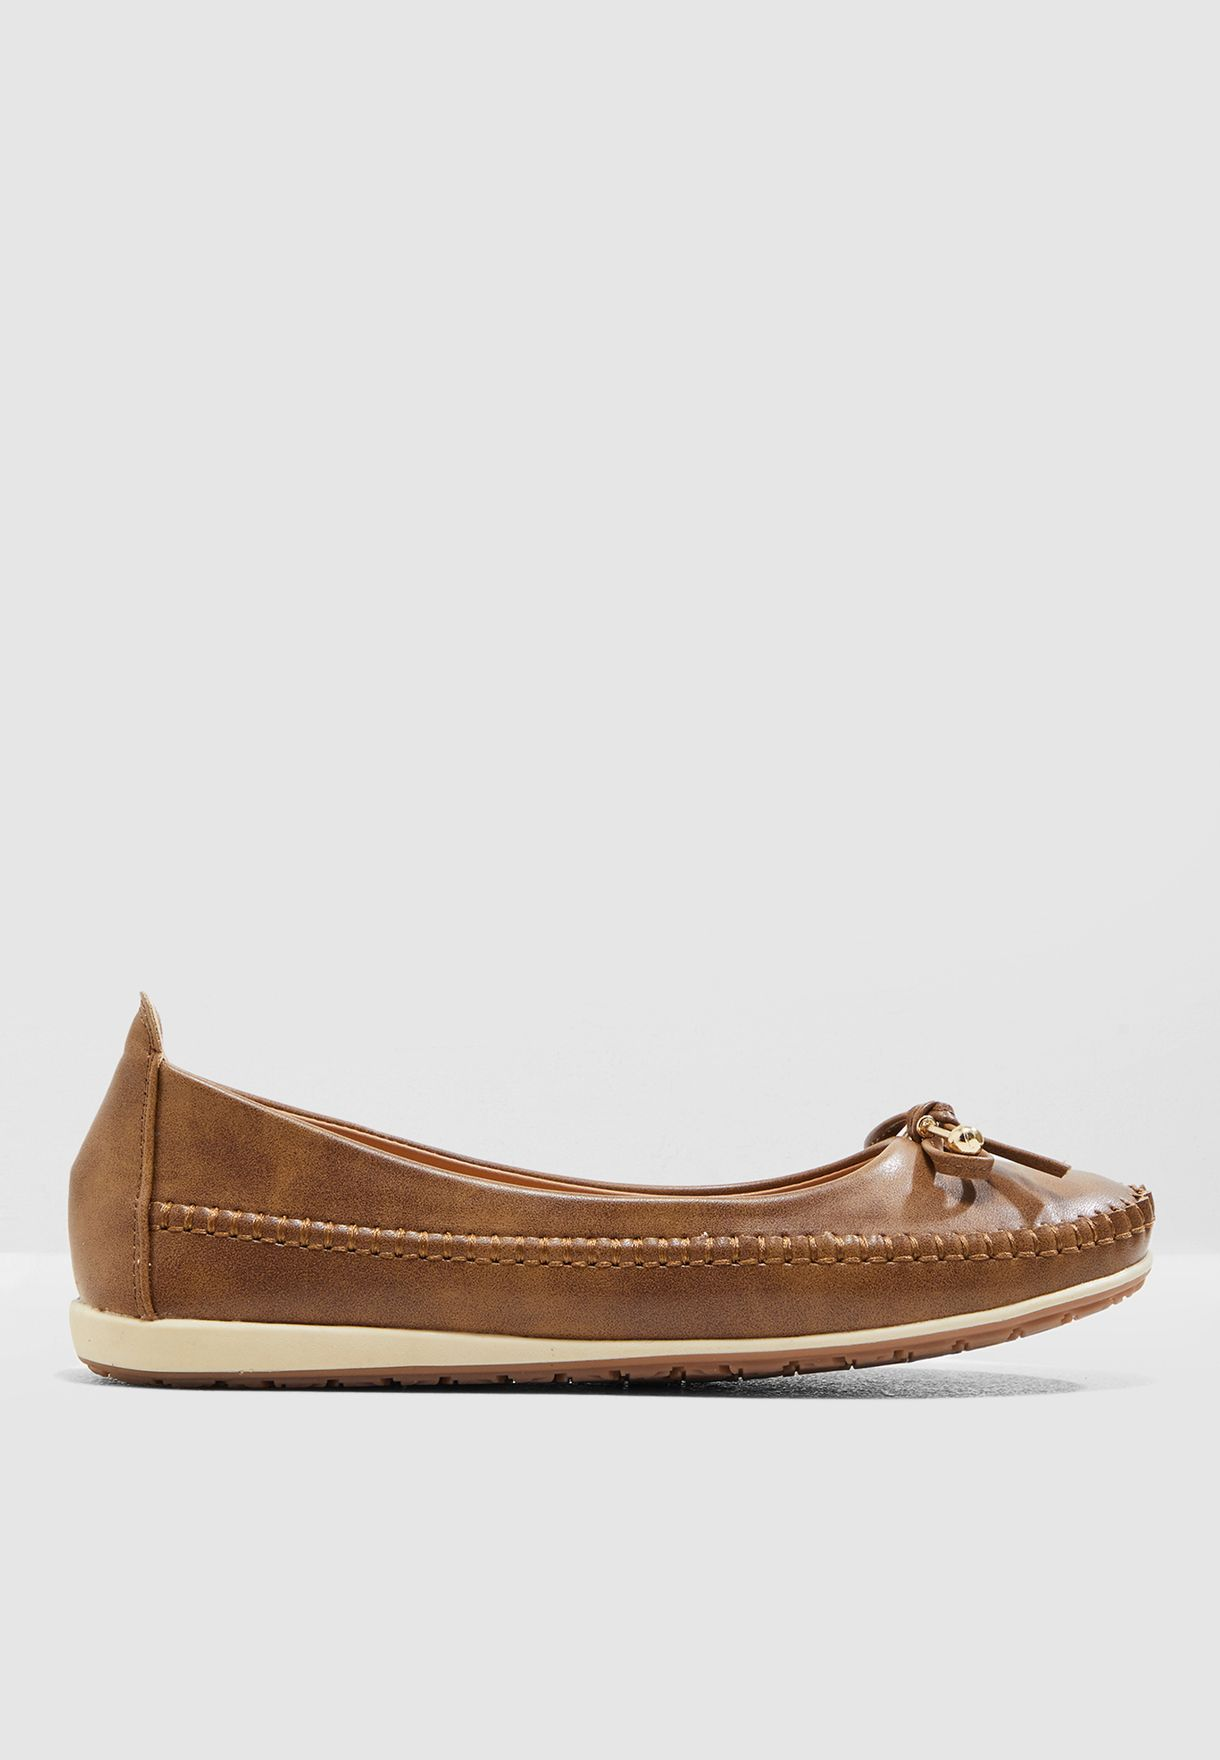 Knot Moccasin